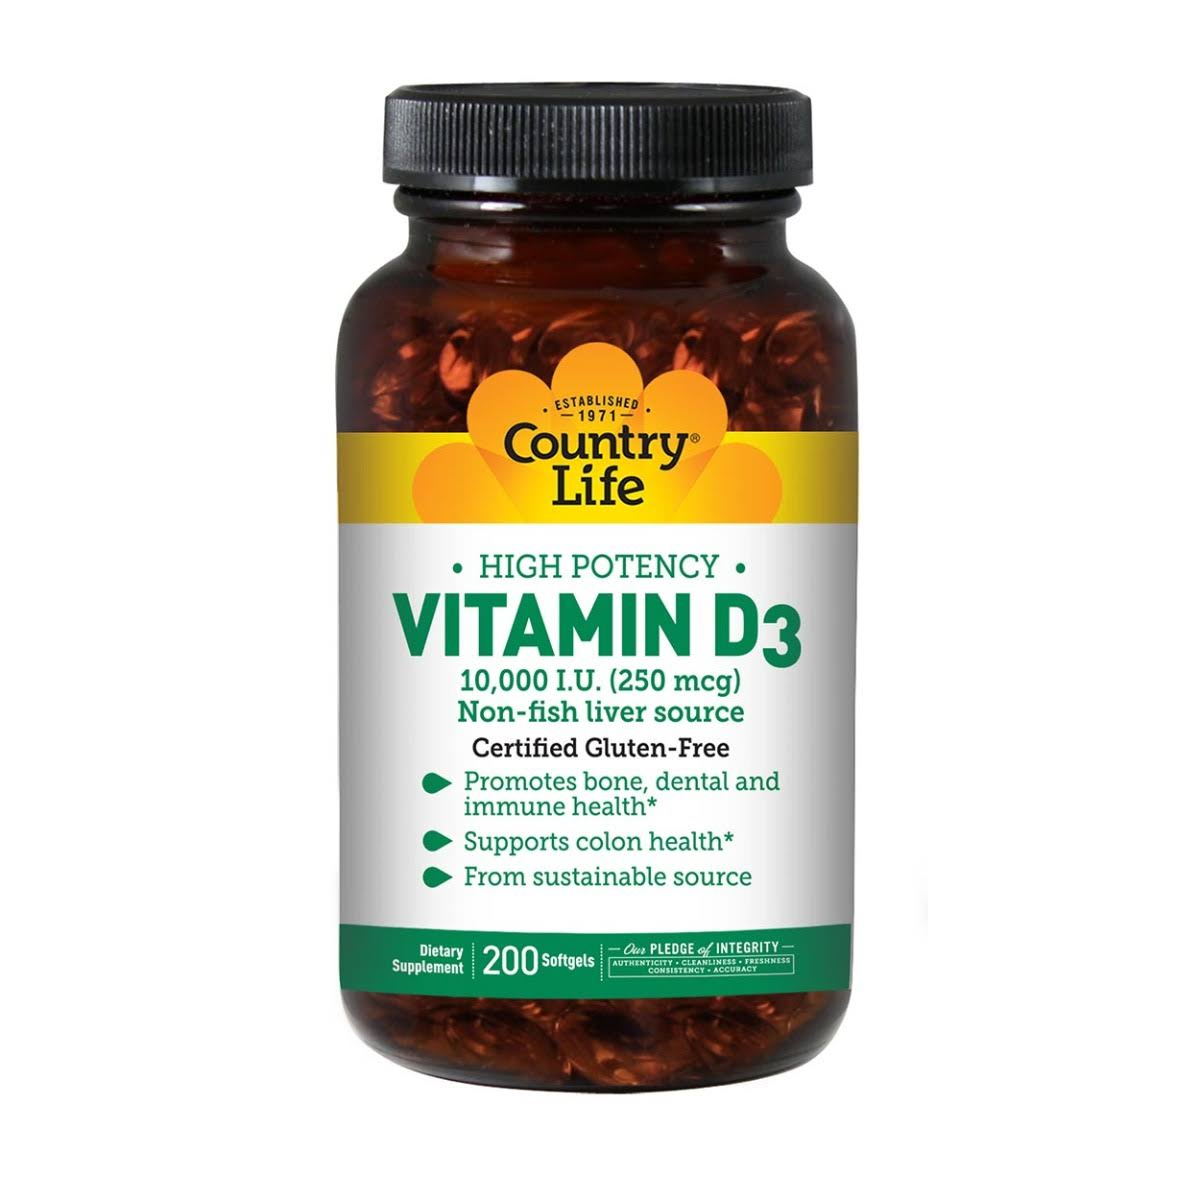 Country Life 250mcg Vitamin D3 - 200 Softgels